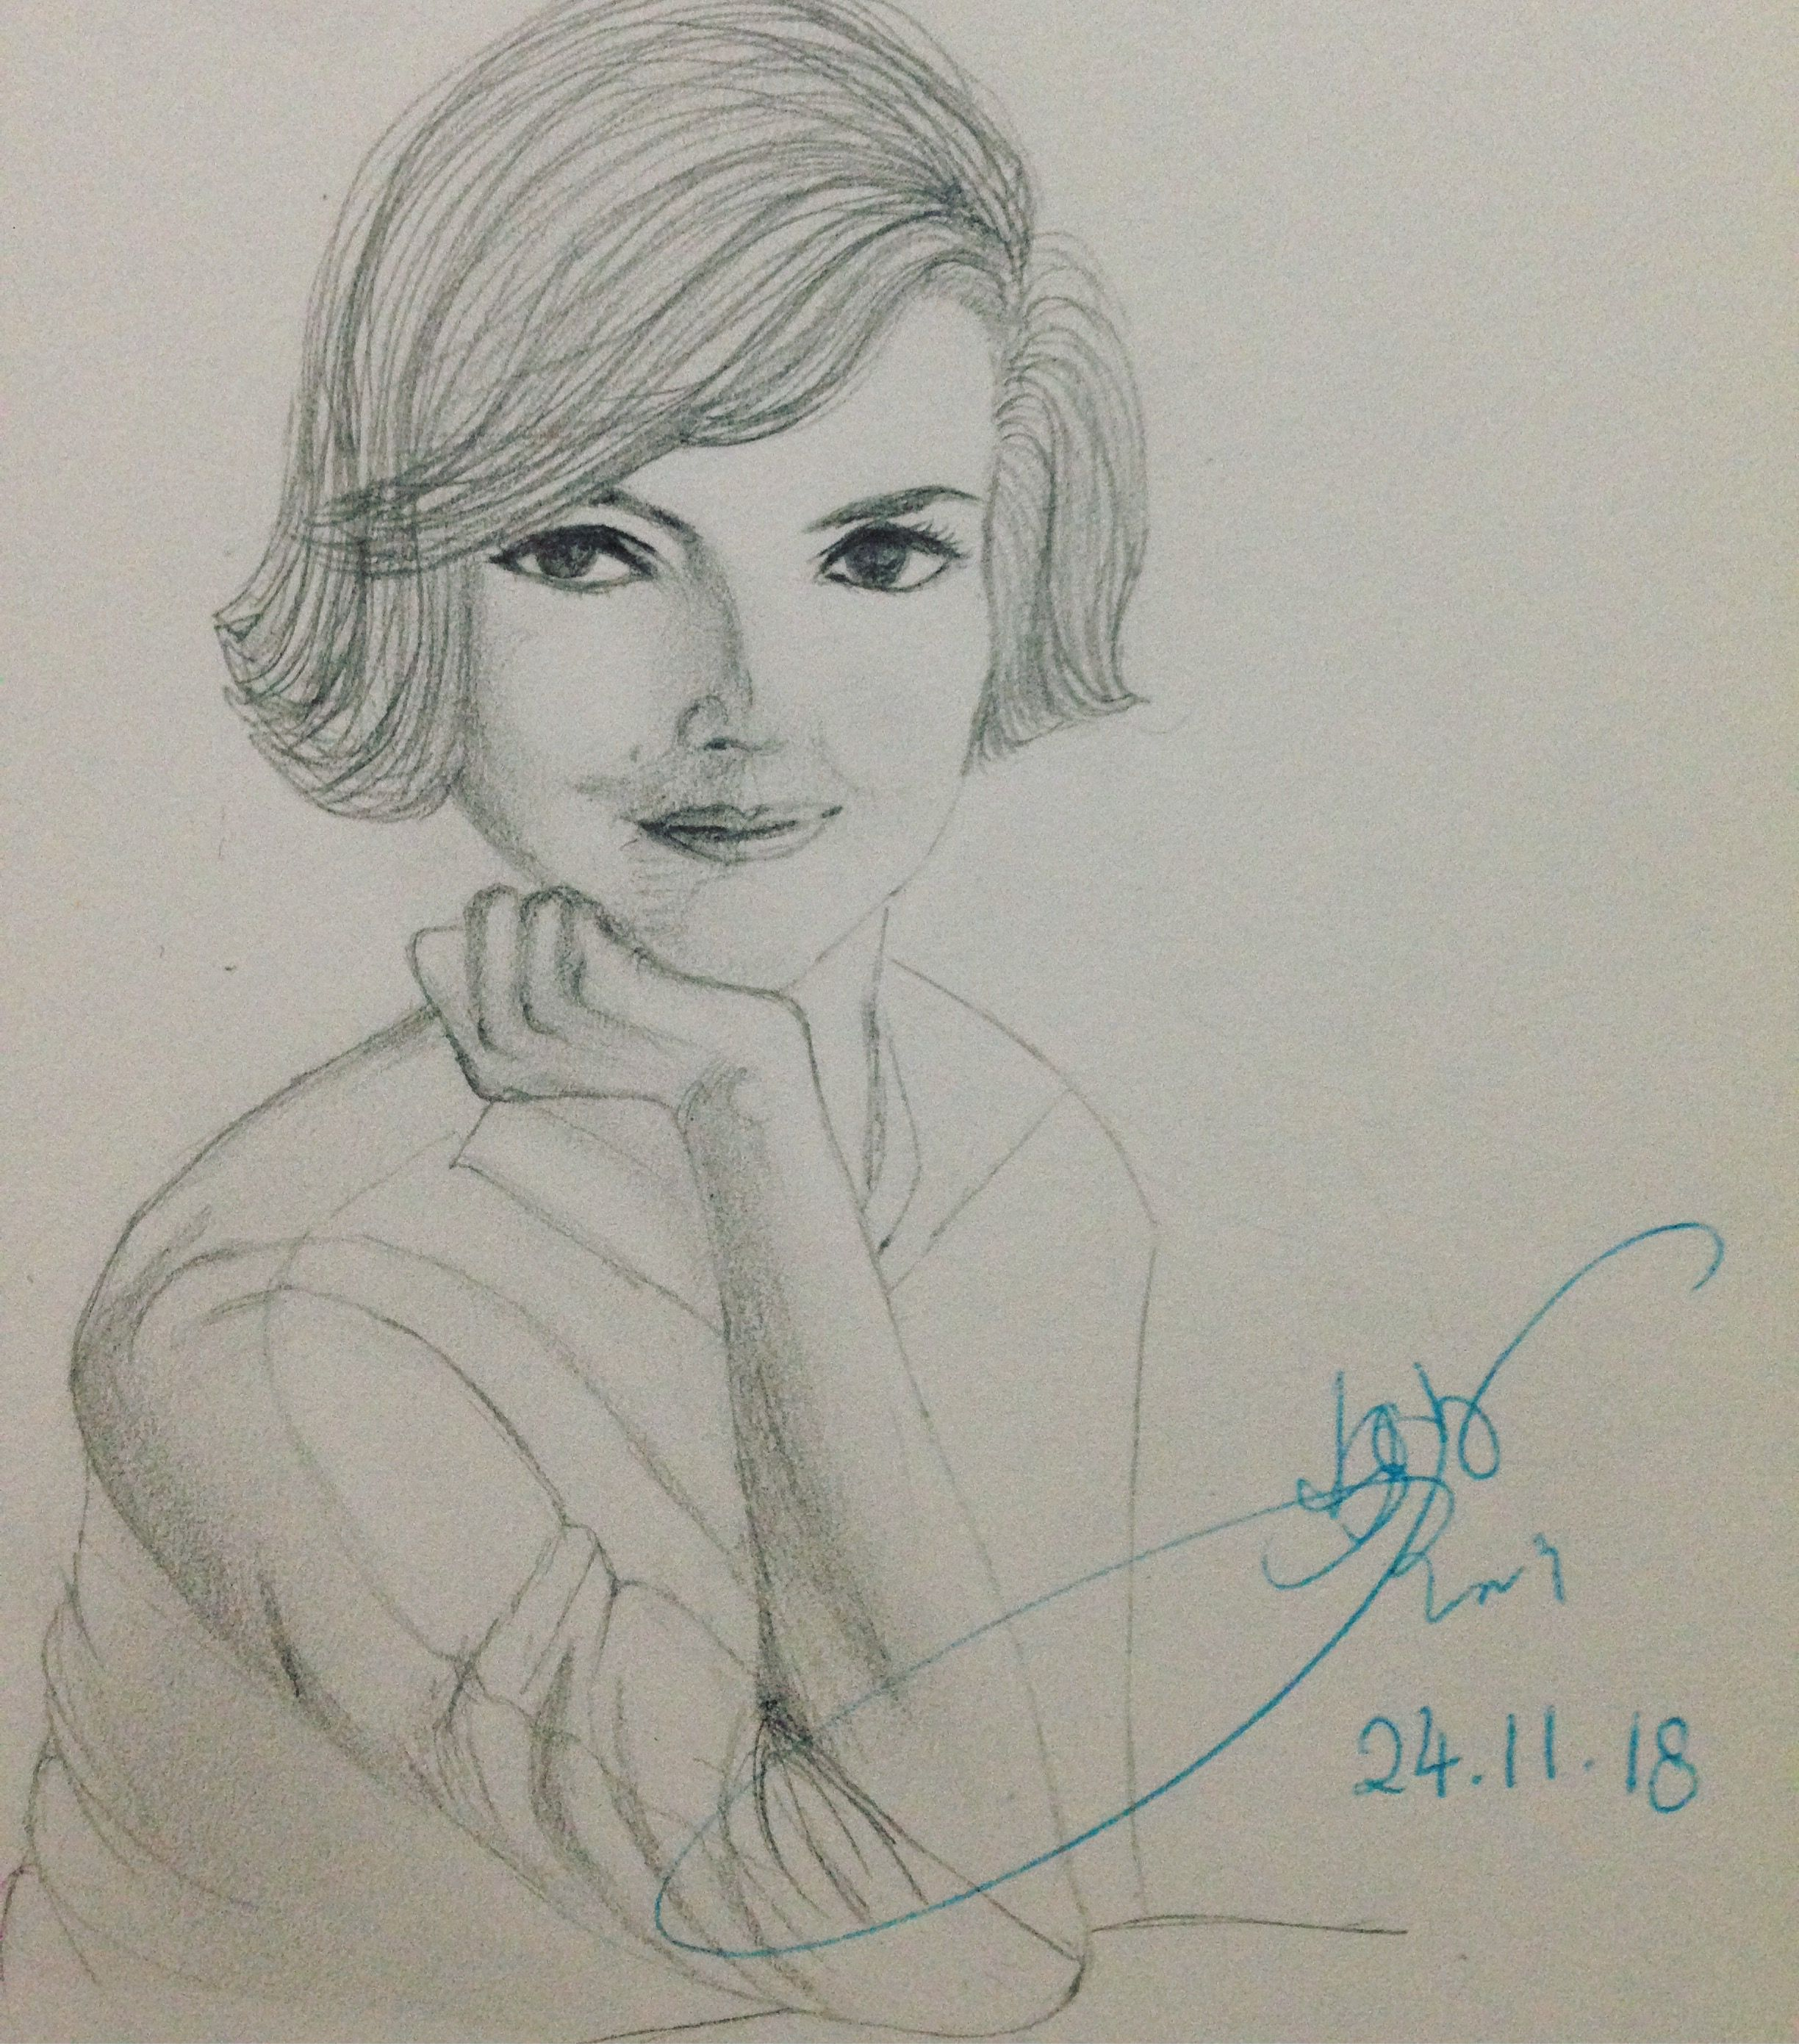 Pin by My Diary yc on Humble sketch   Female sketch, Male